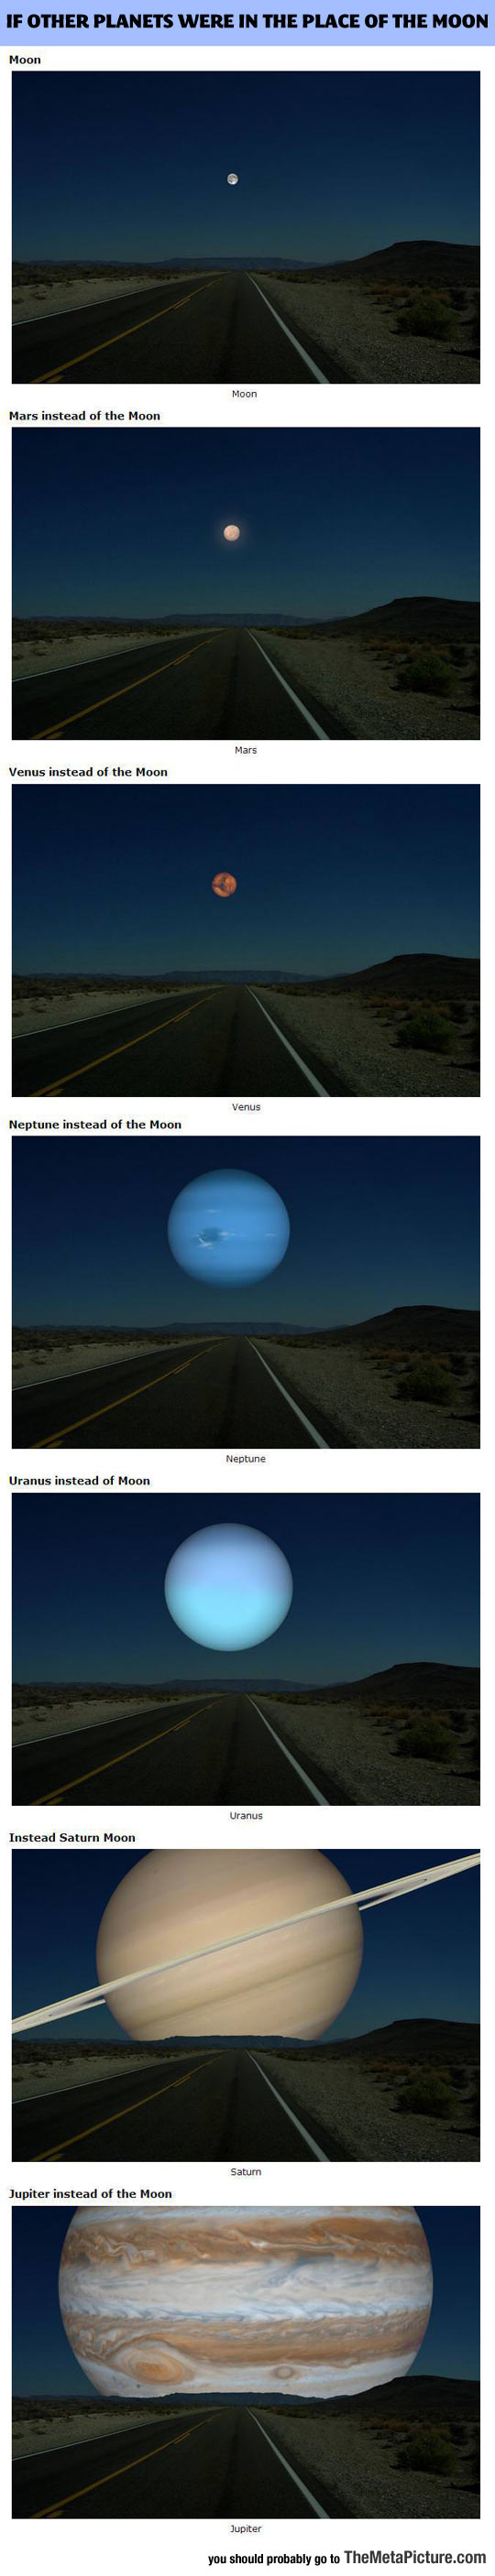 If Other Planets Were In The Place Of The Moon